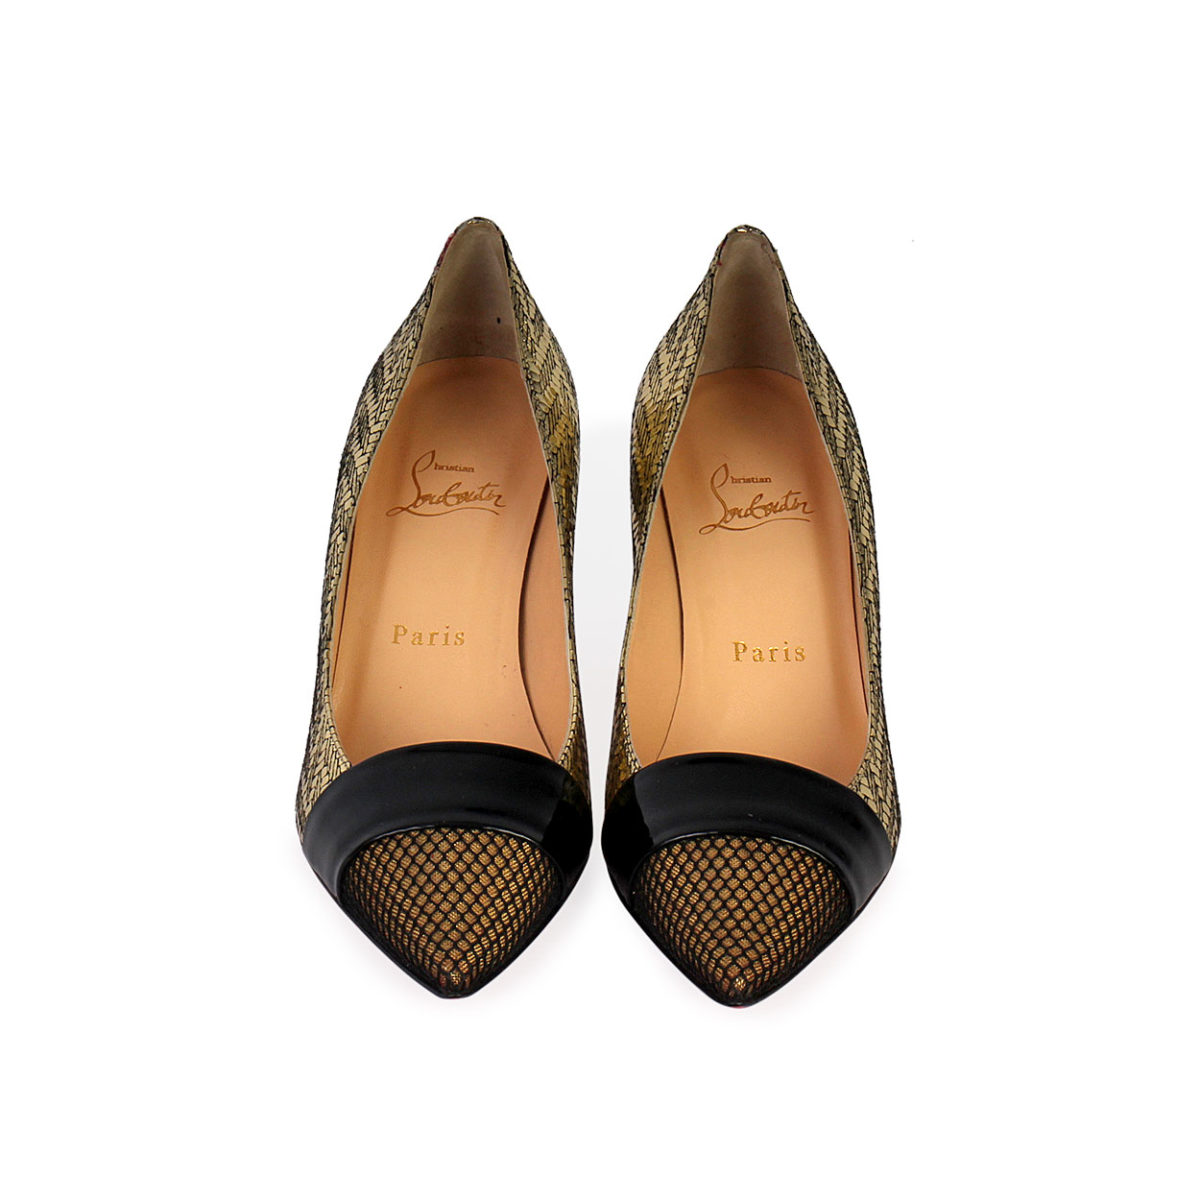 sale retailer 079b5 26ea6 CHRISTIAN LOUBOUTIN Mesh Pointy Toe Pumps Gold/Black - S: 37.5 (4.5)